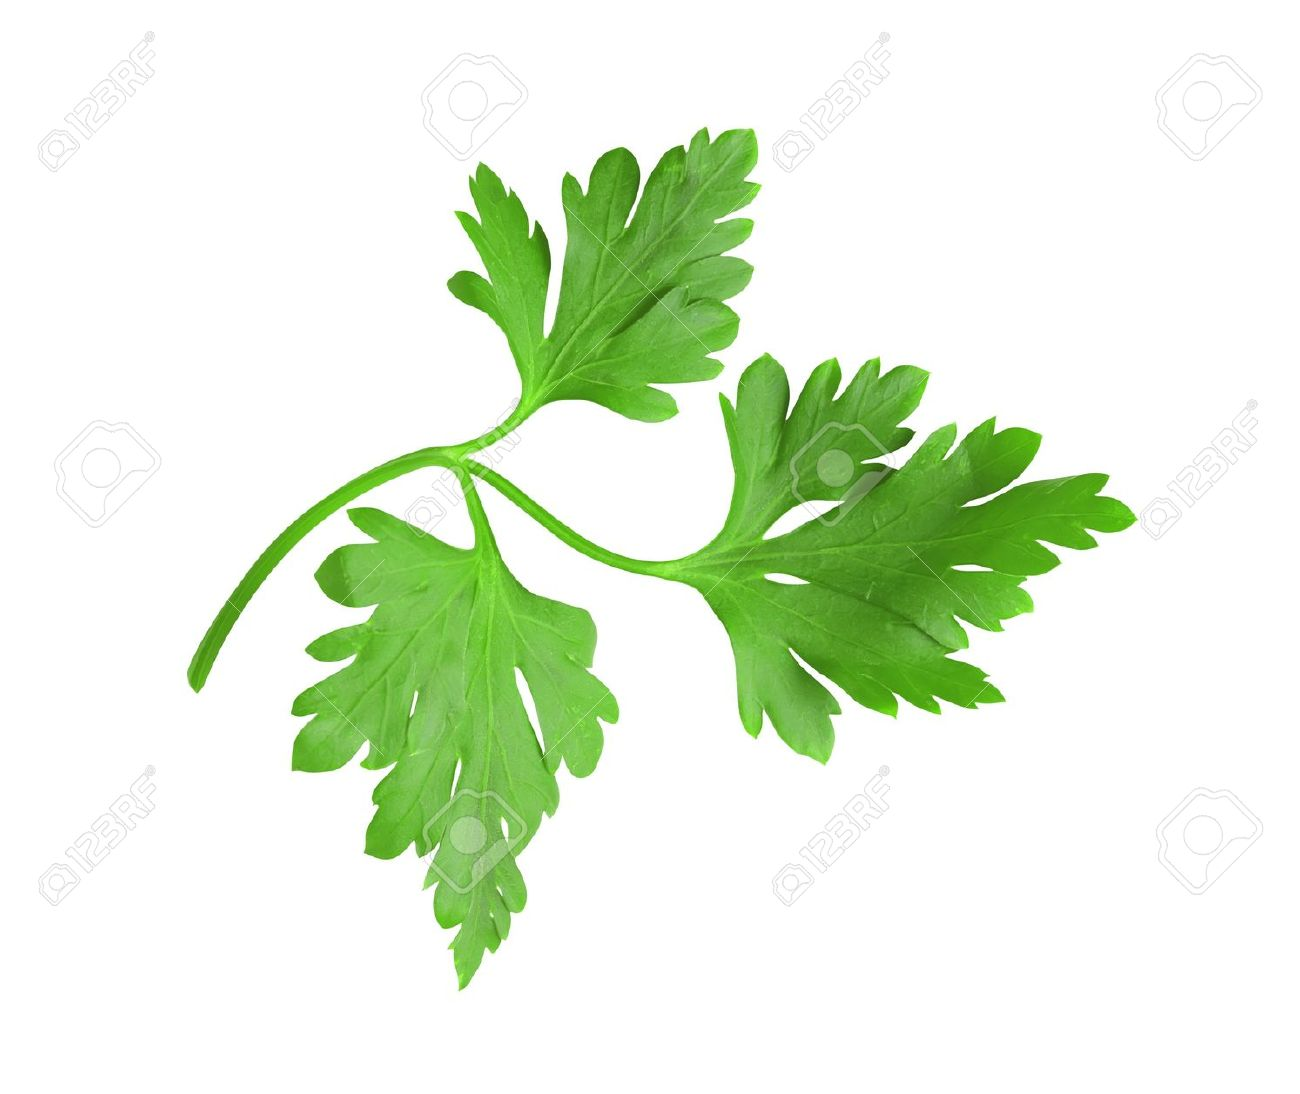 Fresh Green Herbs (leaf) Parsley Isolated On White Background.